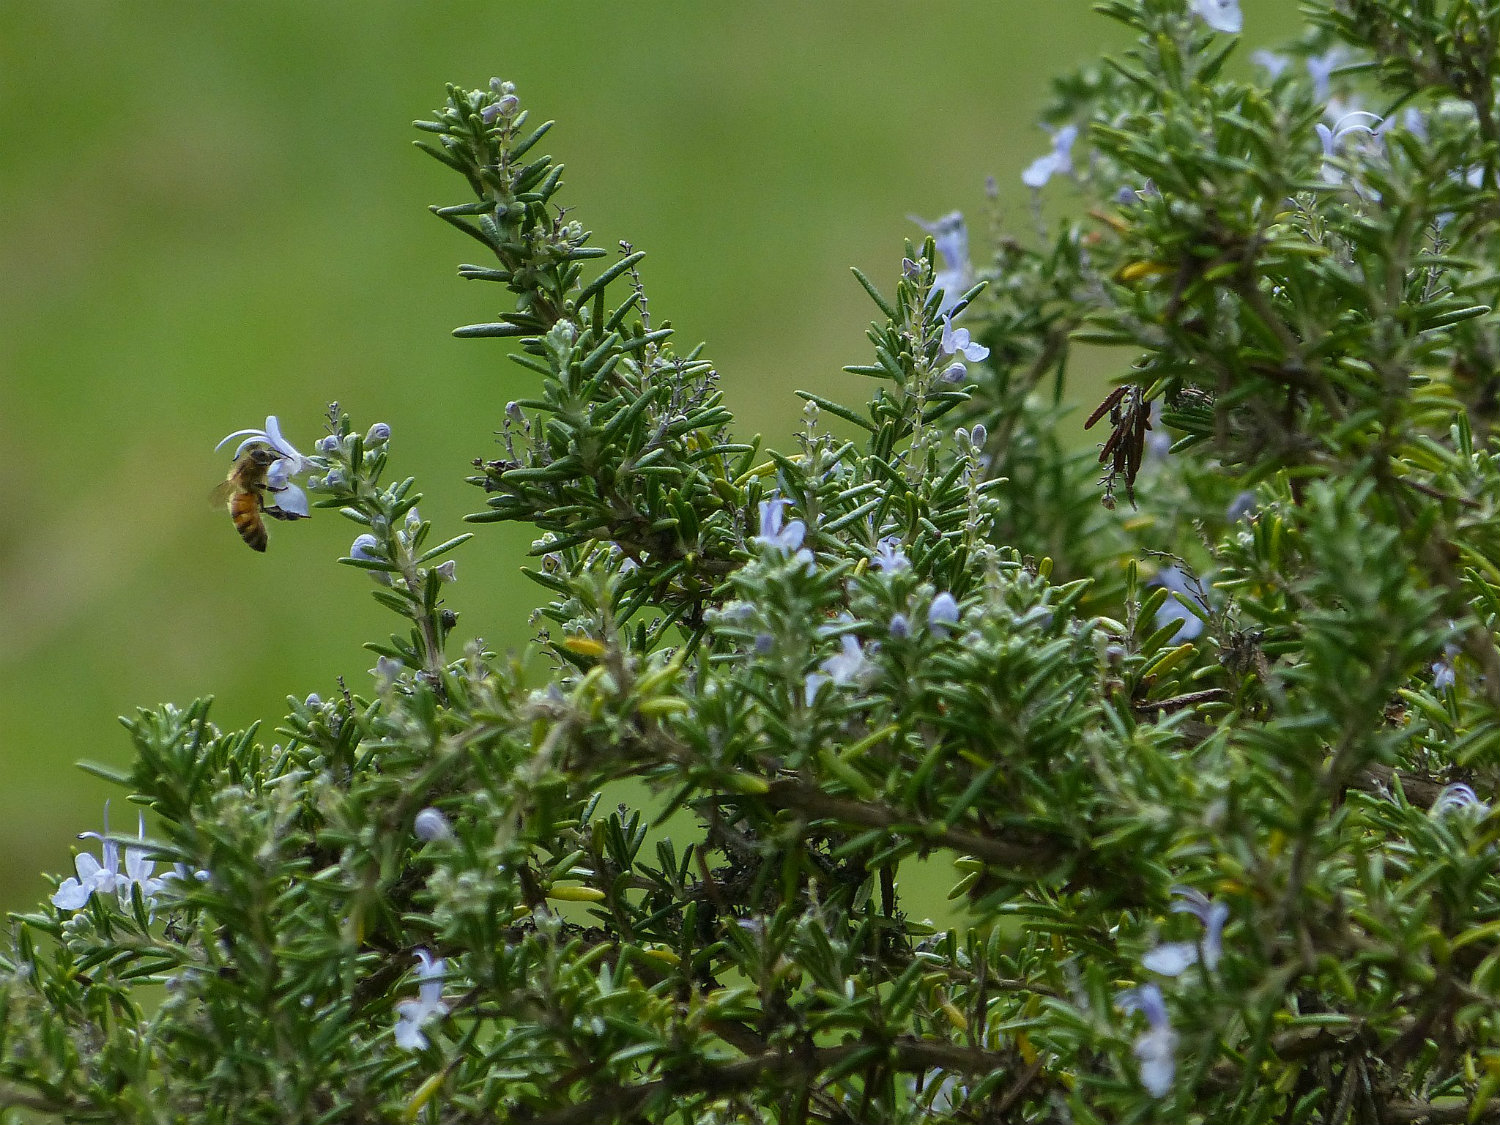 Rosemary, by Carole Grogloth Molokai, Hawaii, [CC BY 3.0 (http://creativecommons.org/licenses/by/3.0)], via Wikimedia Commons